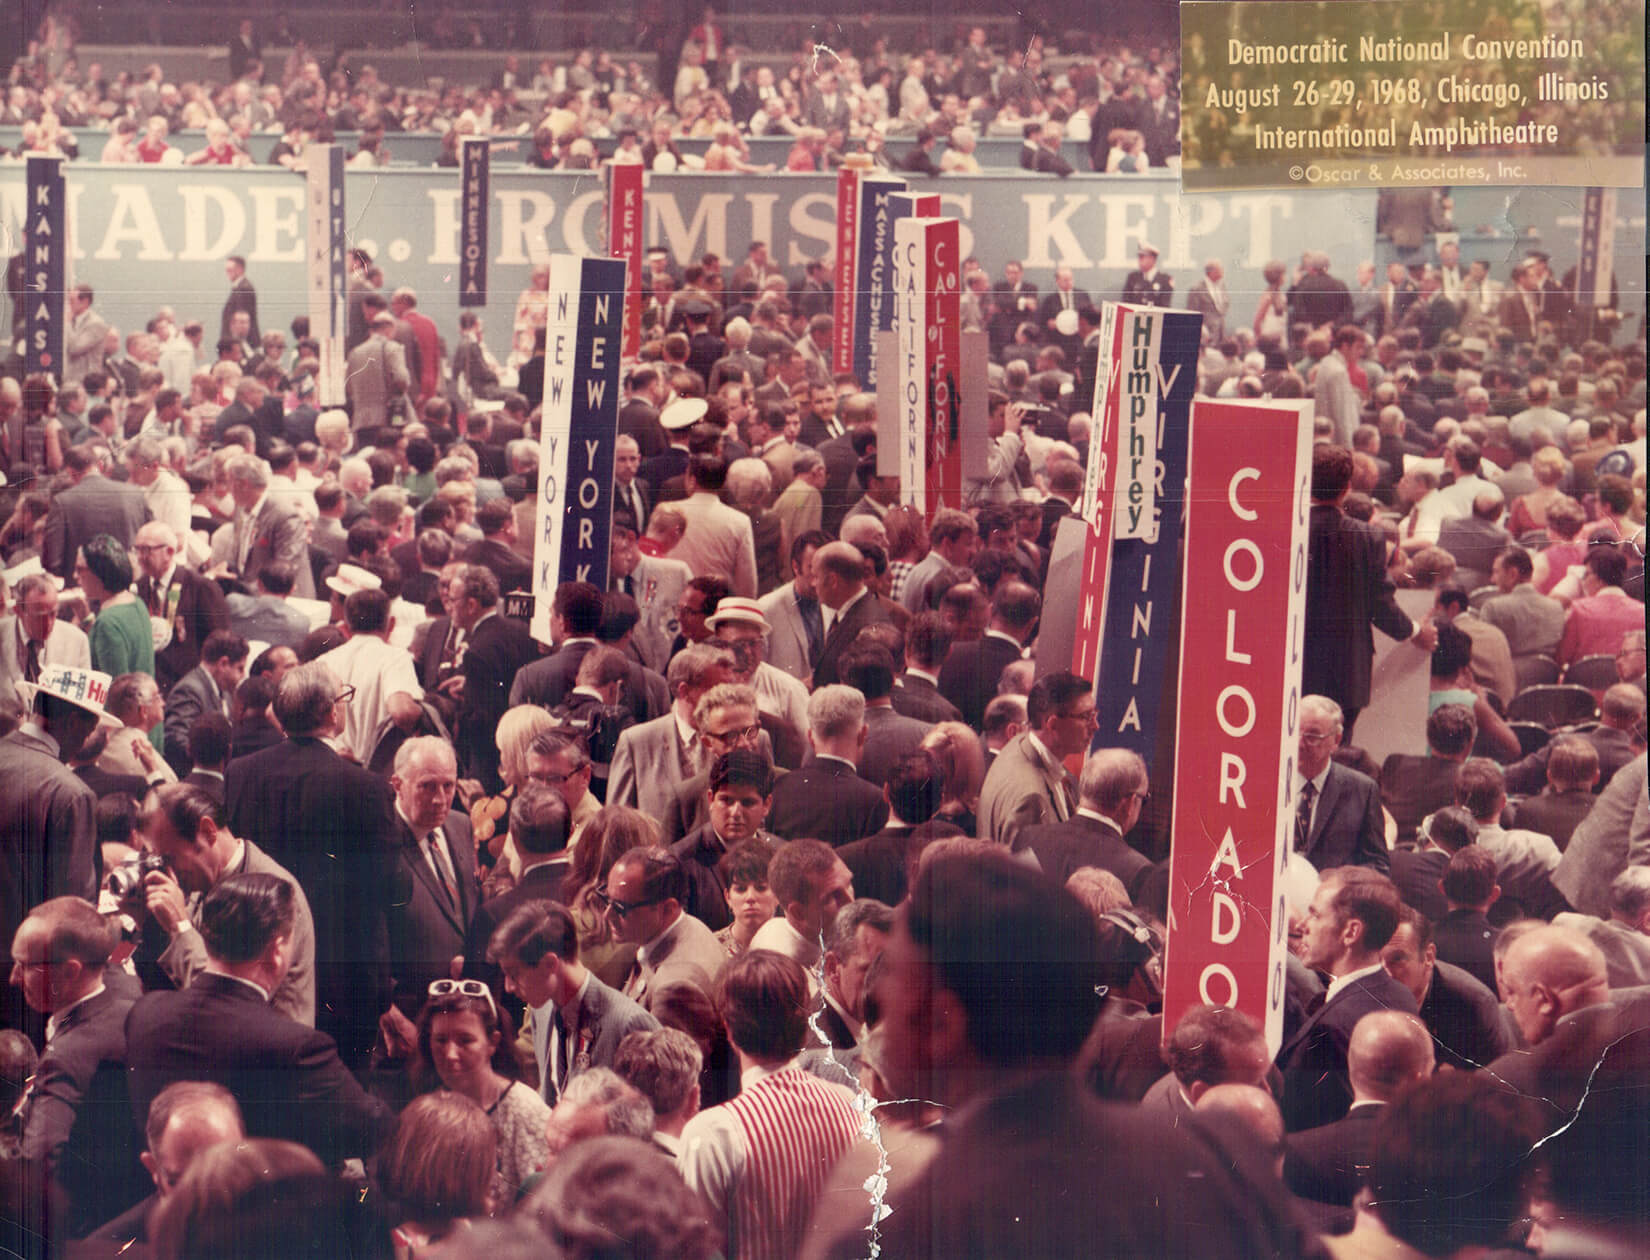 Color photo of a room of packed people, vertical red and blue state signs -- MN is blue -- and a credit in the upper right corner: Democratic National Convention, August 26-29 1968, Chicago, copyright Oscar and Associates, Inc.